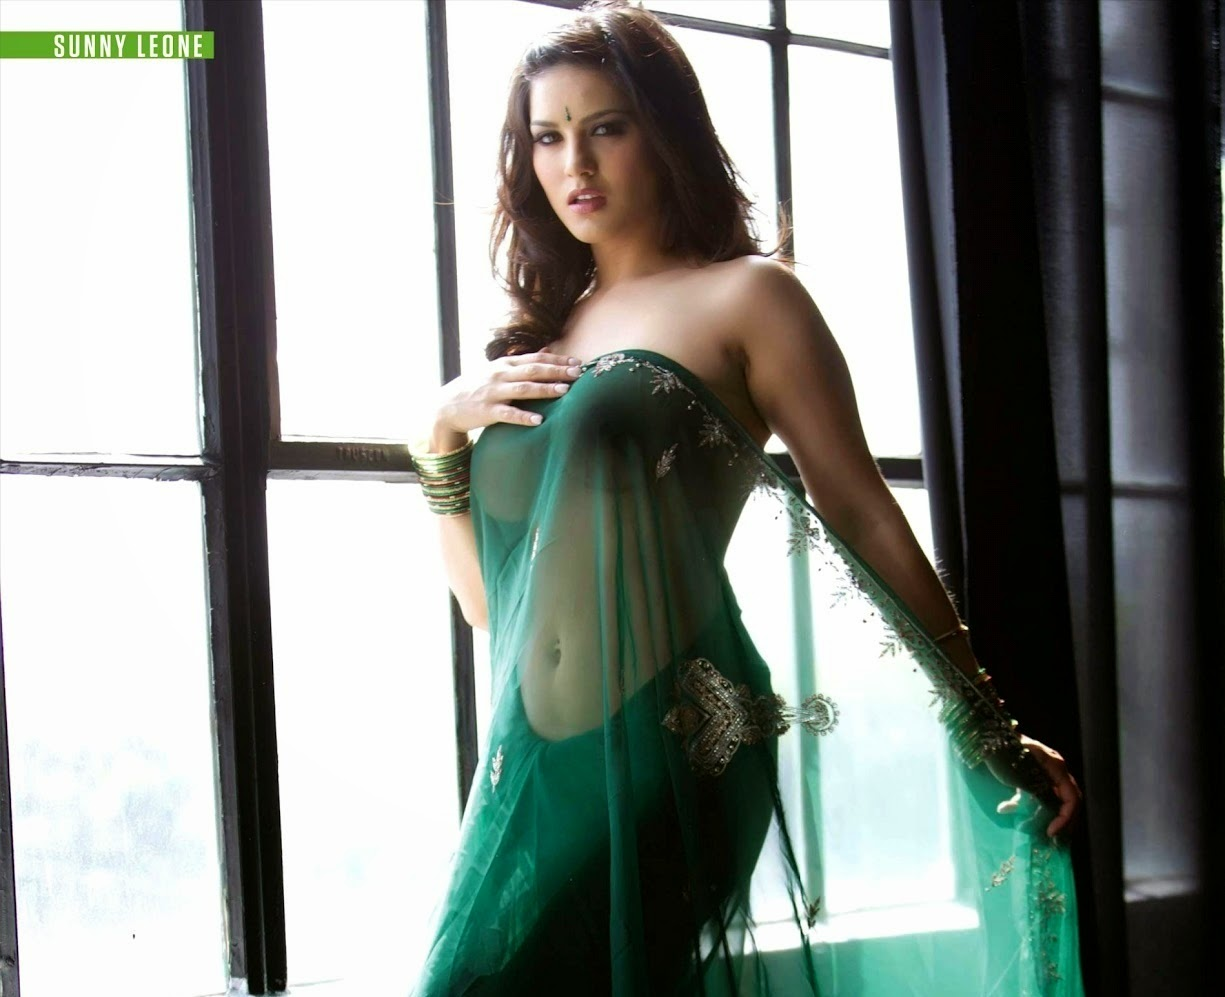 Hot Sunny Leone In Green Saree  Hot Wallpapers-2007